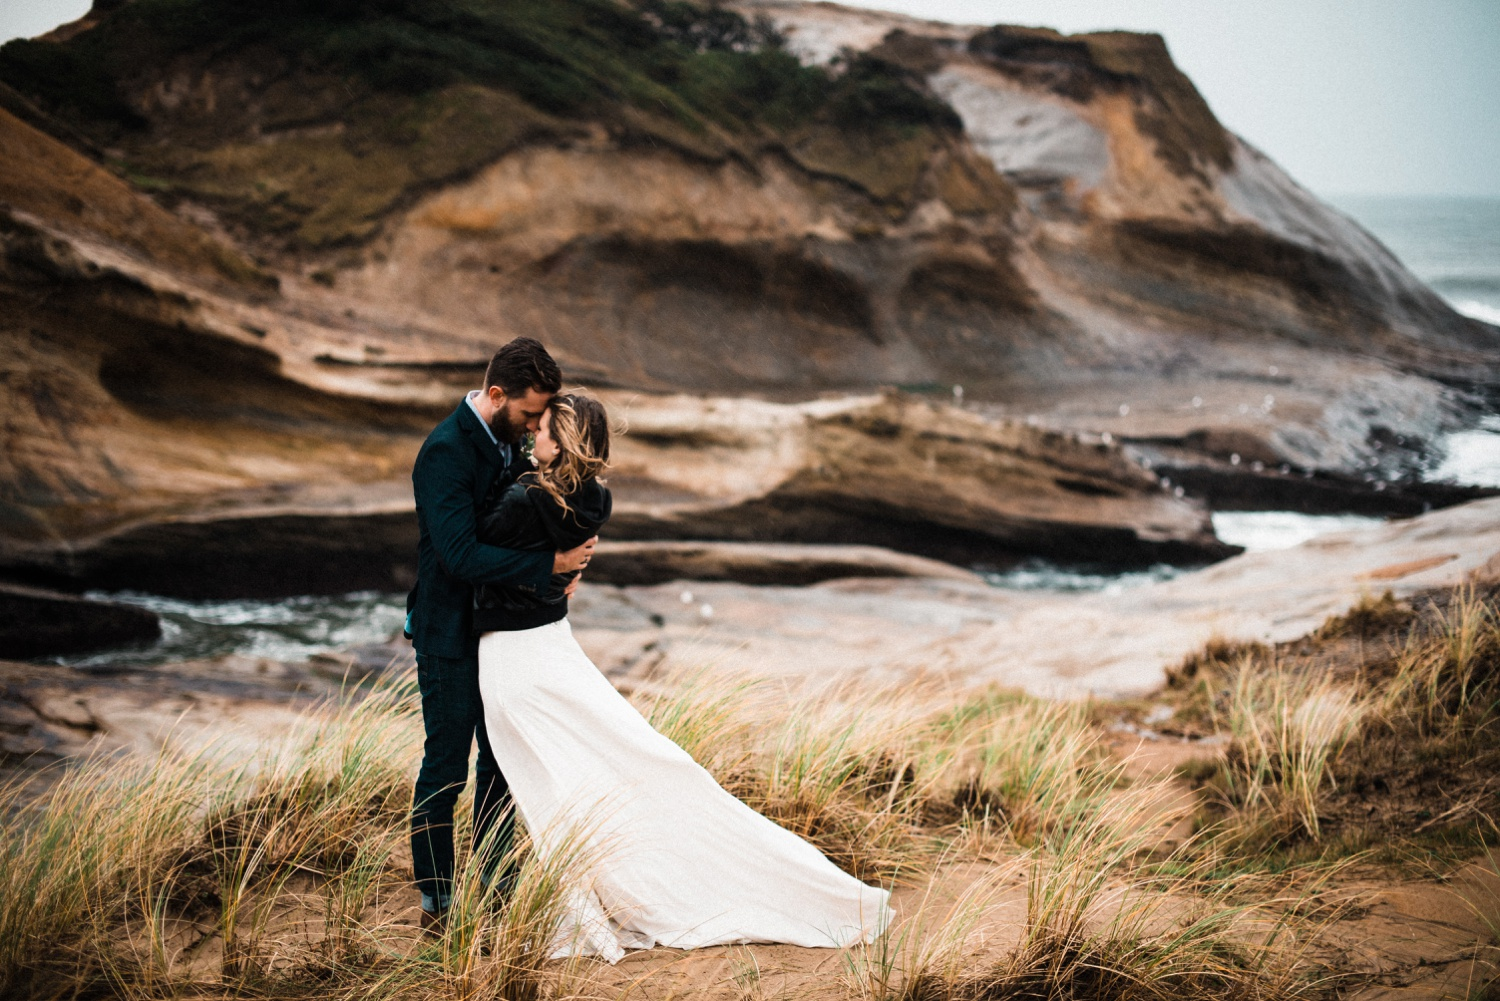 Oregon_Coast_Elopement_Wedding_The_Foxes_Photography_108.jpg